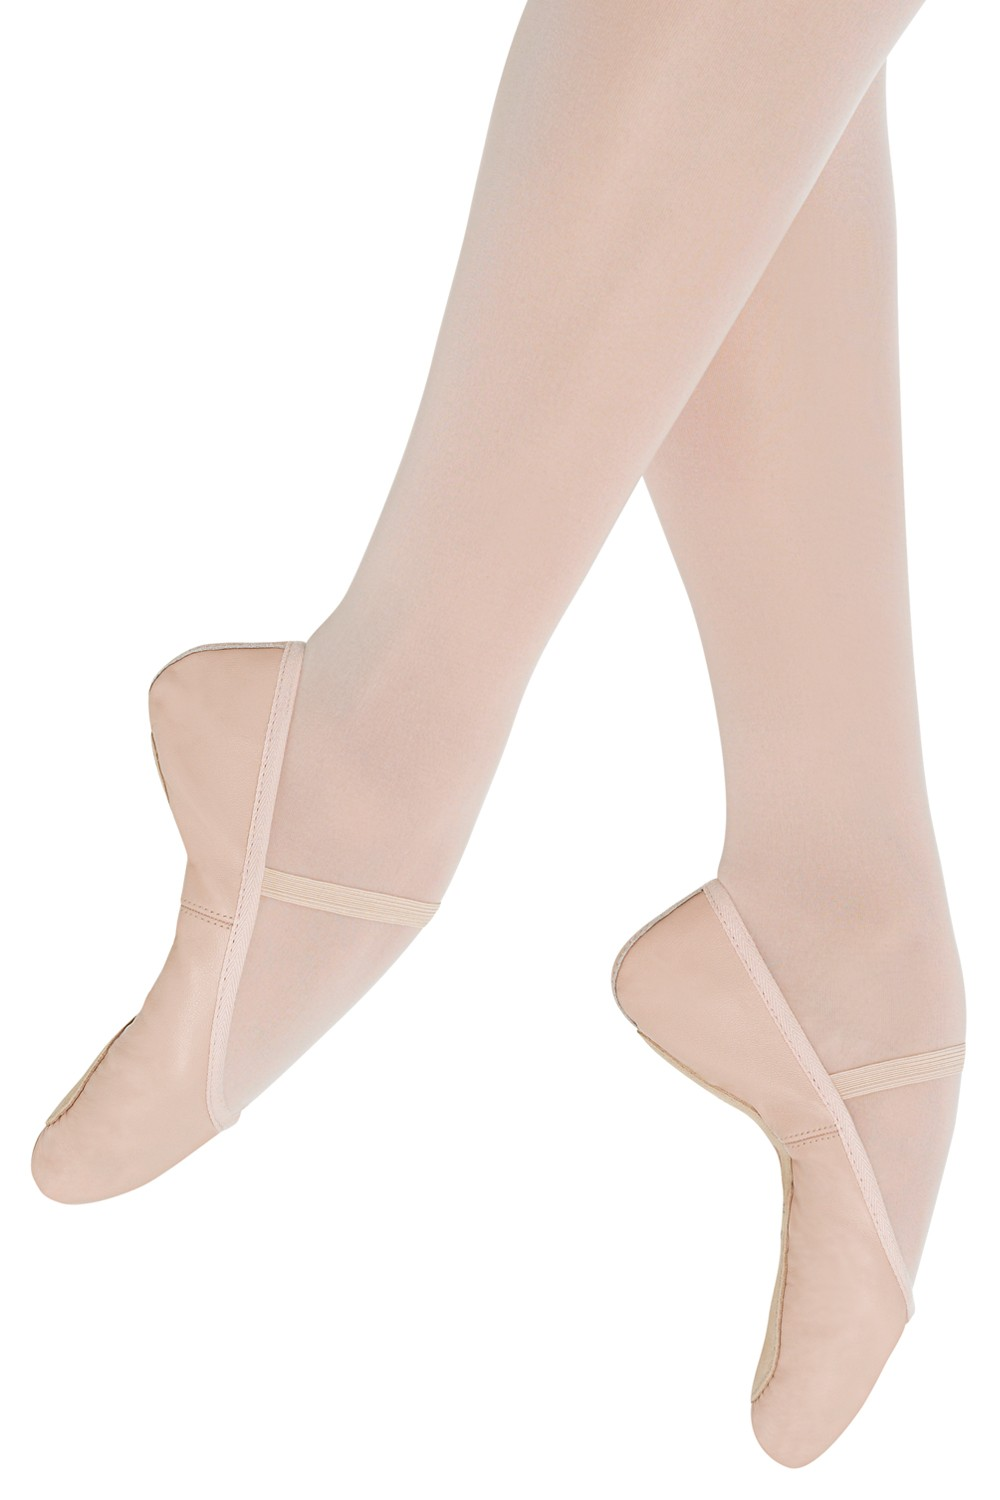 Debut I - Bambina Girl's Ballet Shoes